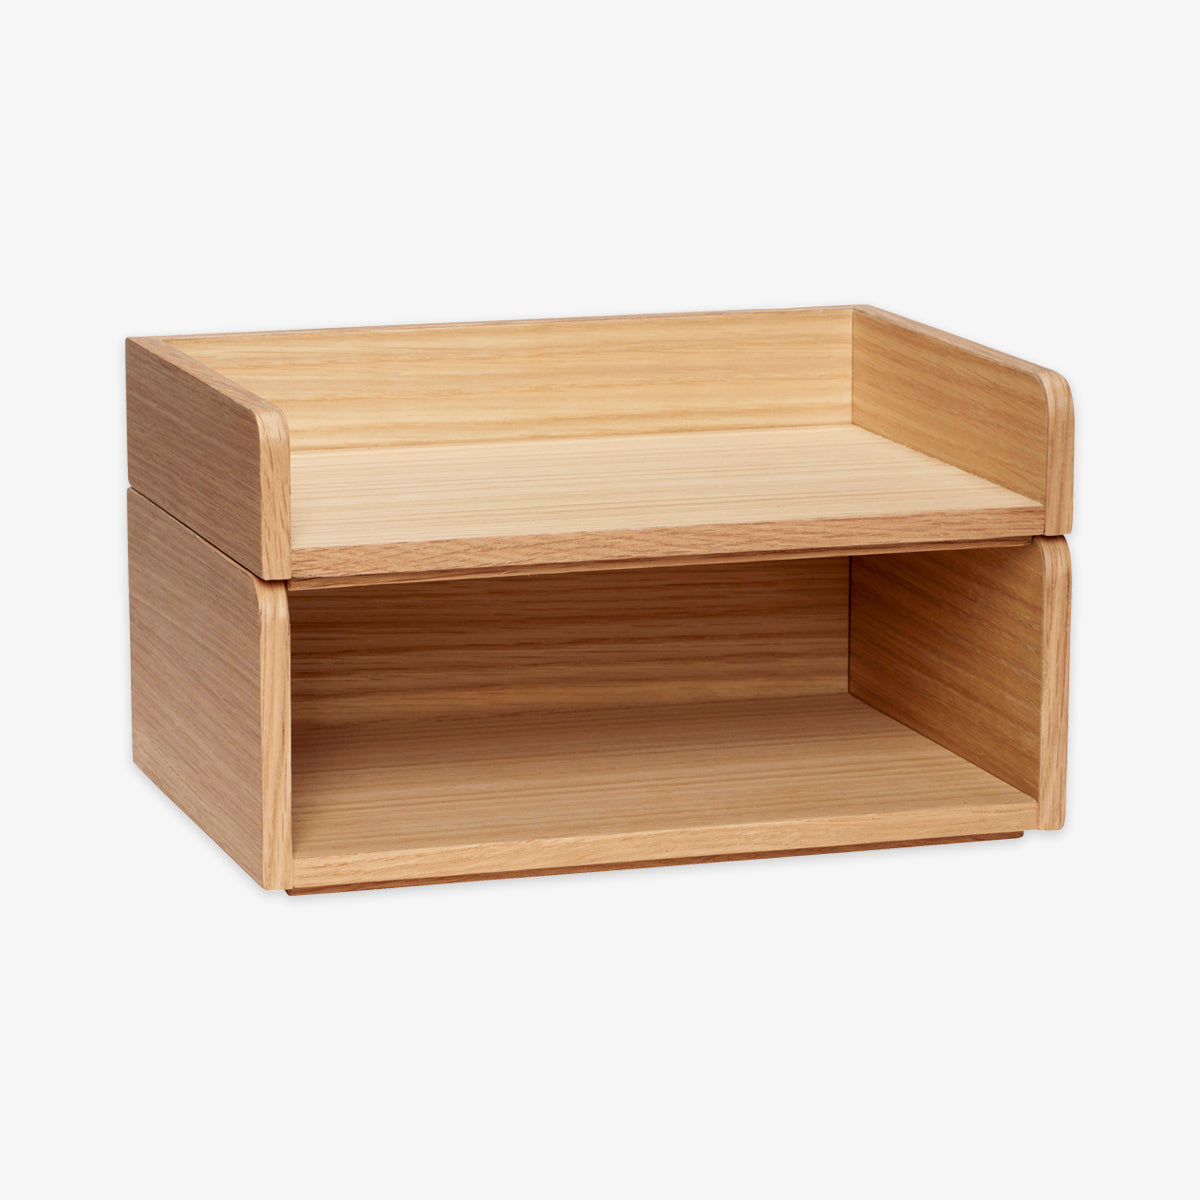 ORGANISER (SET OF 2) // OAK